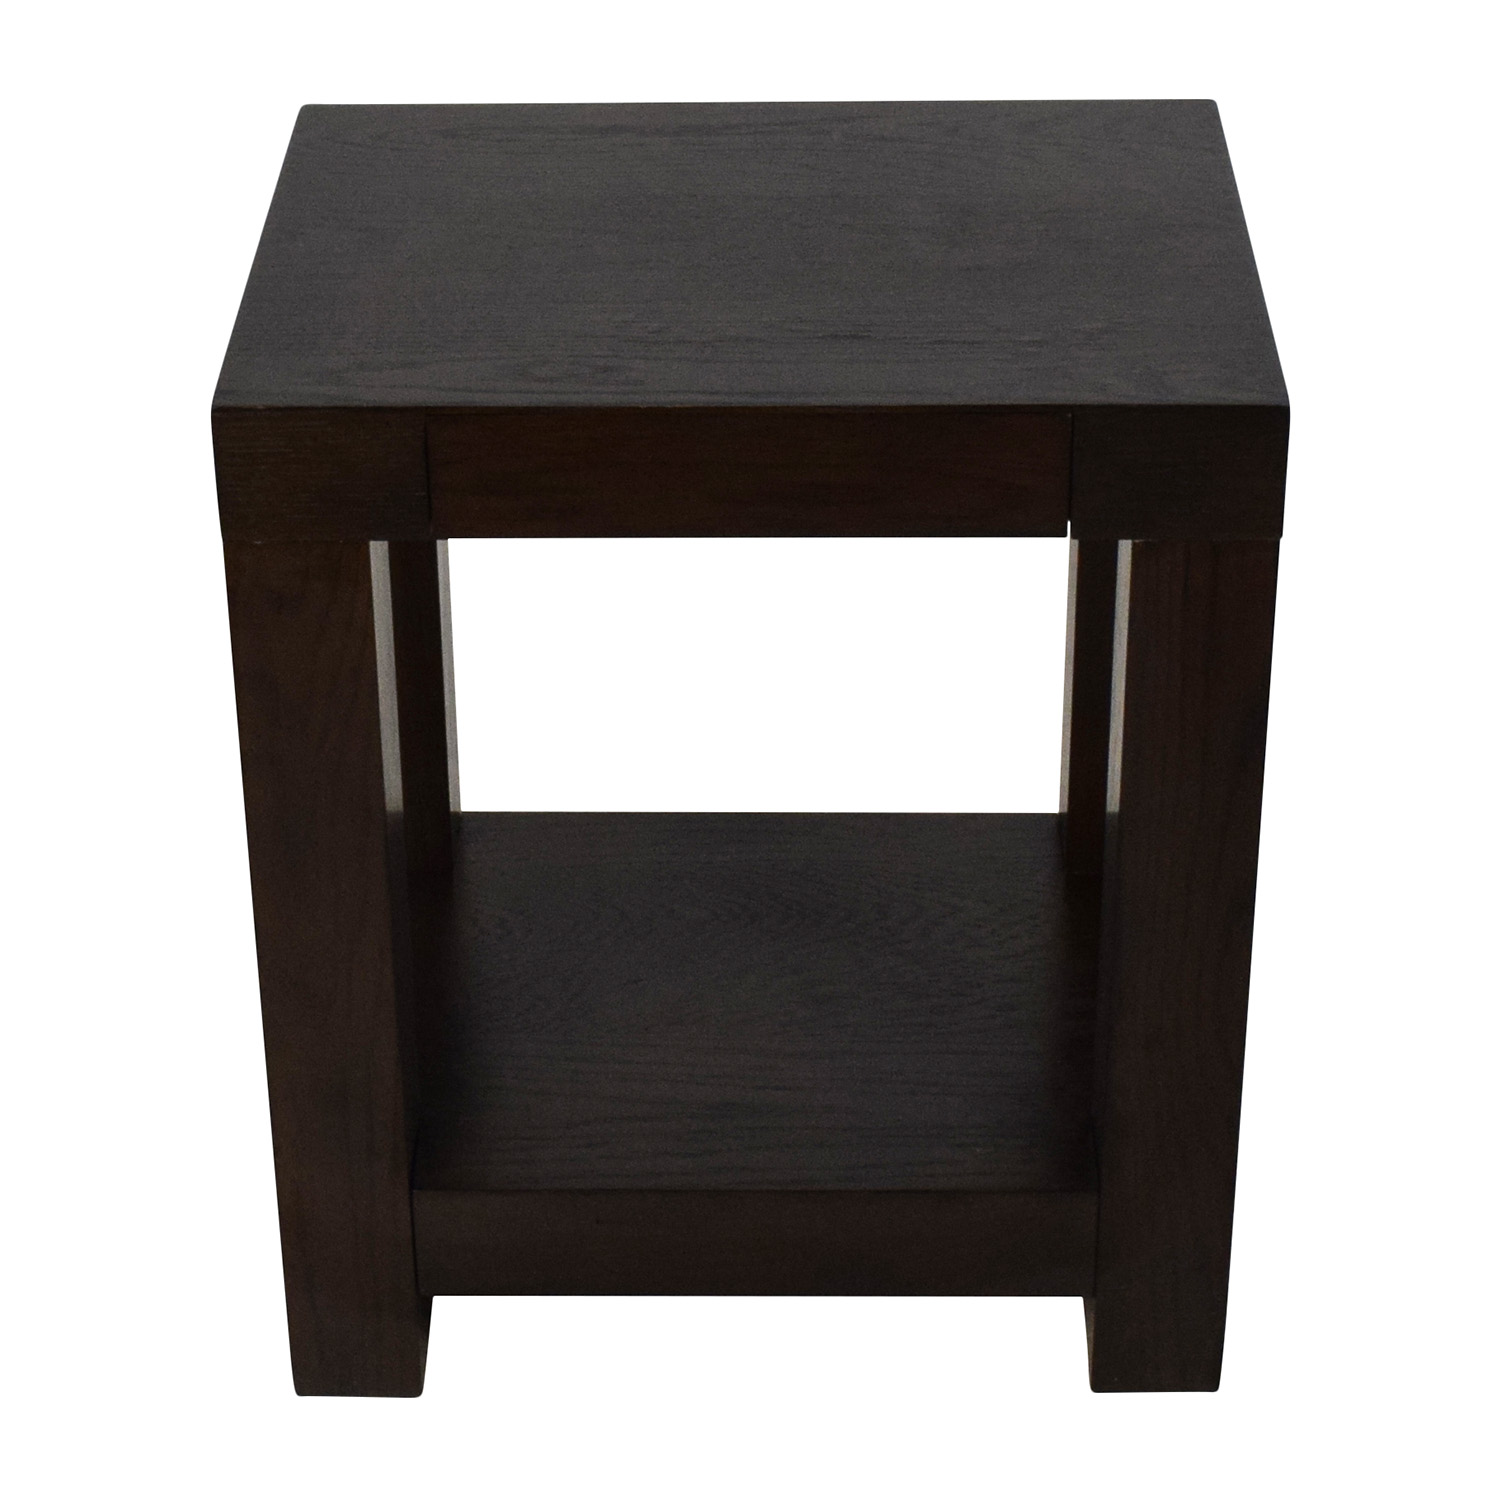 west elm end table 76% OFF   West Elm West Elm Parsons End Table / Tables west elm end table